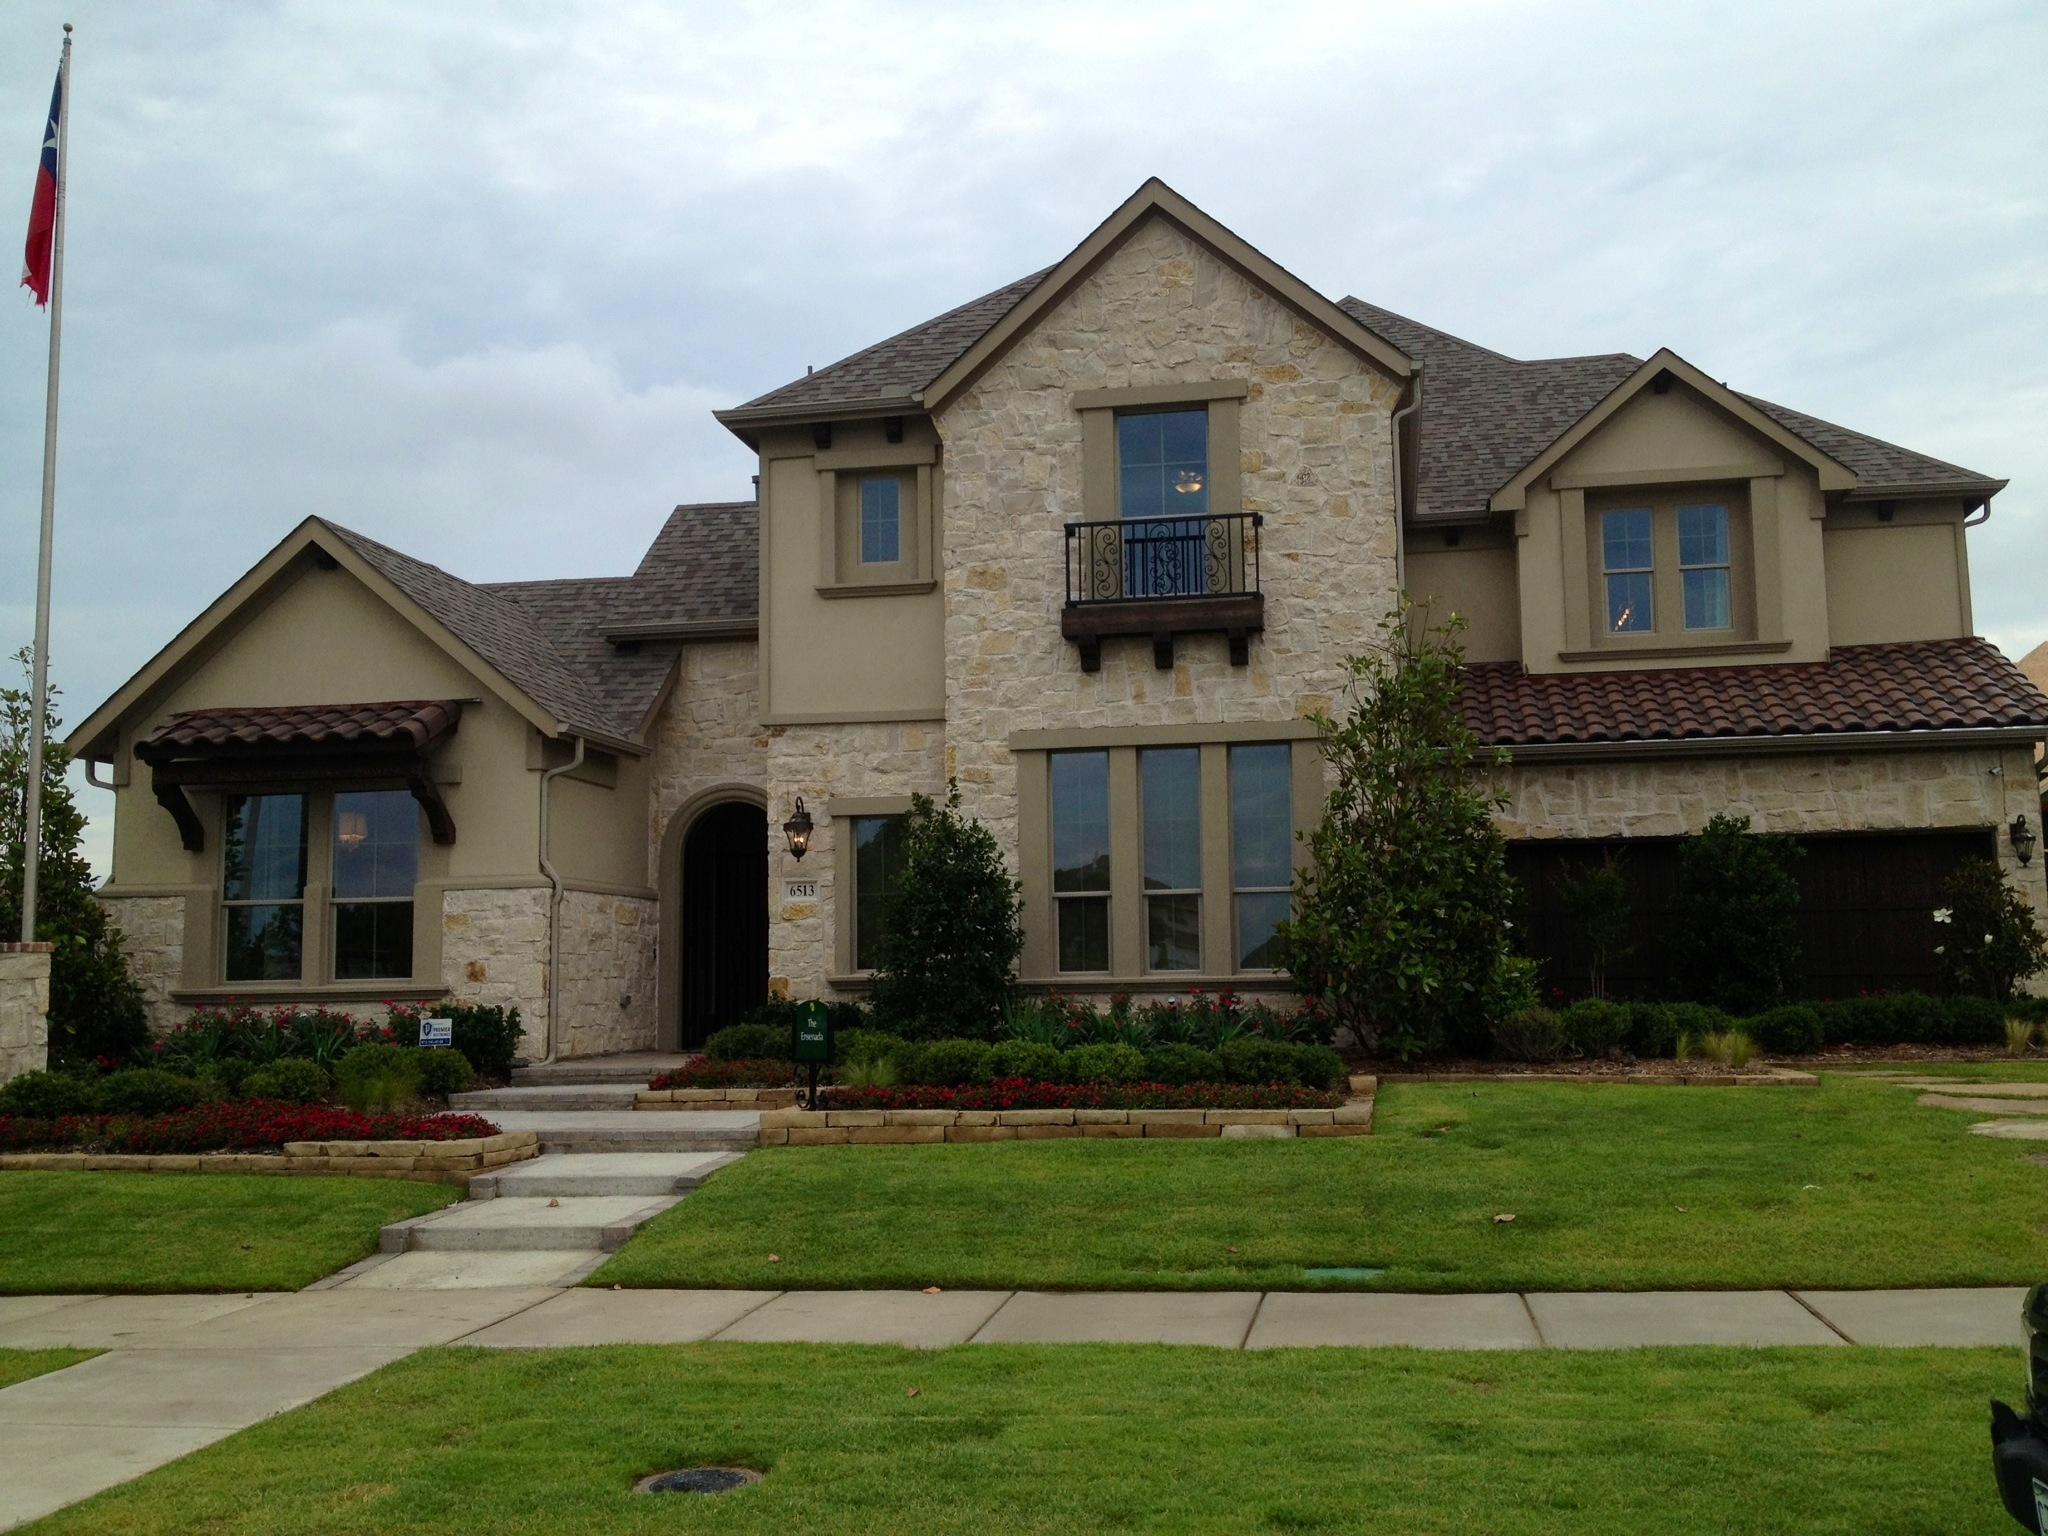 Dress homes phillips creek ranch update frisco for Ranch model homes